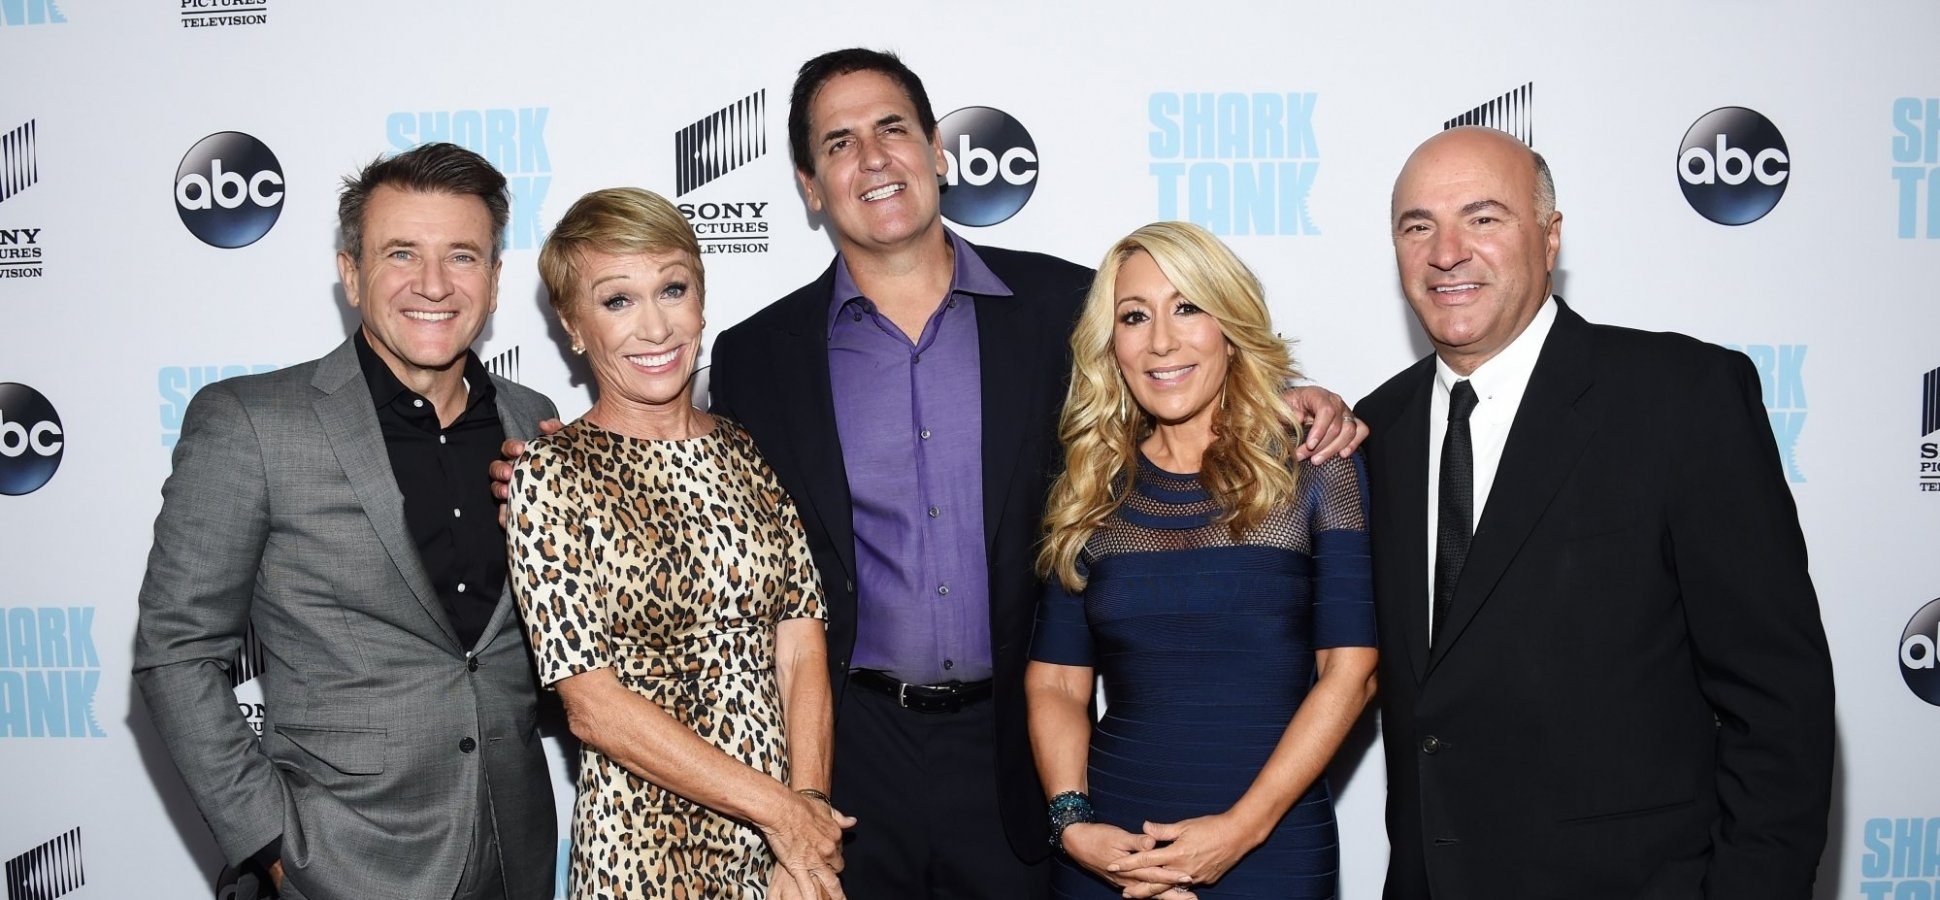 American Entrepreneurship Is Declining. Here's Why 'Shark Tank' Is to Blame   Inc.com